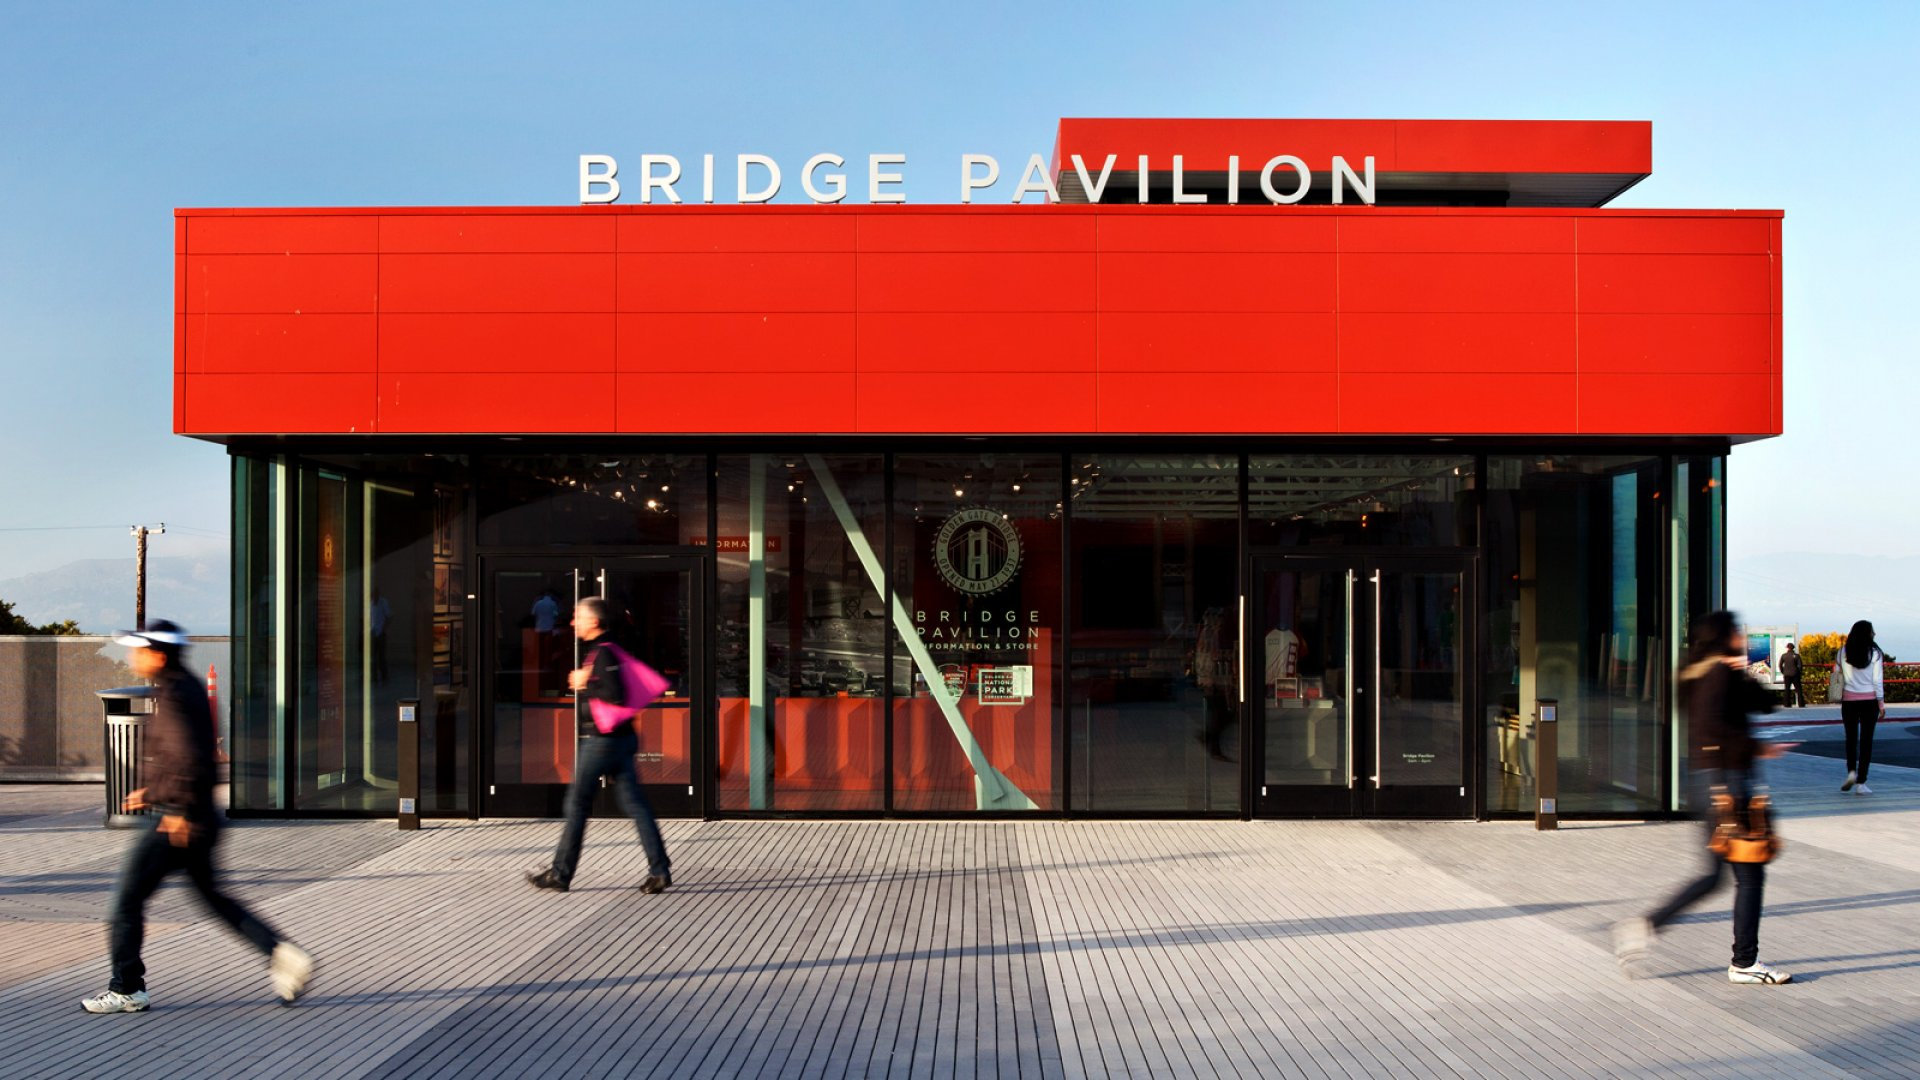 <b>HIP TO BE SQUARE</b><br> A Project Frog building welcomes visitors to San Francisco's Golden Gate Bridge.